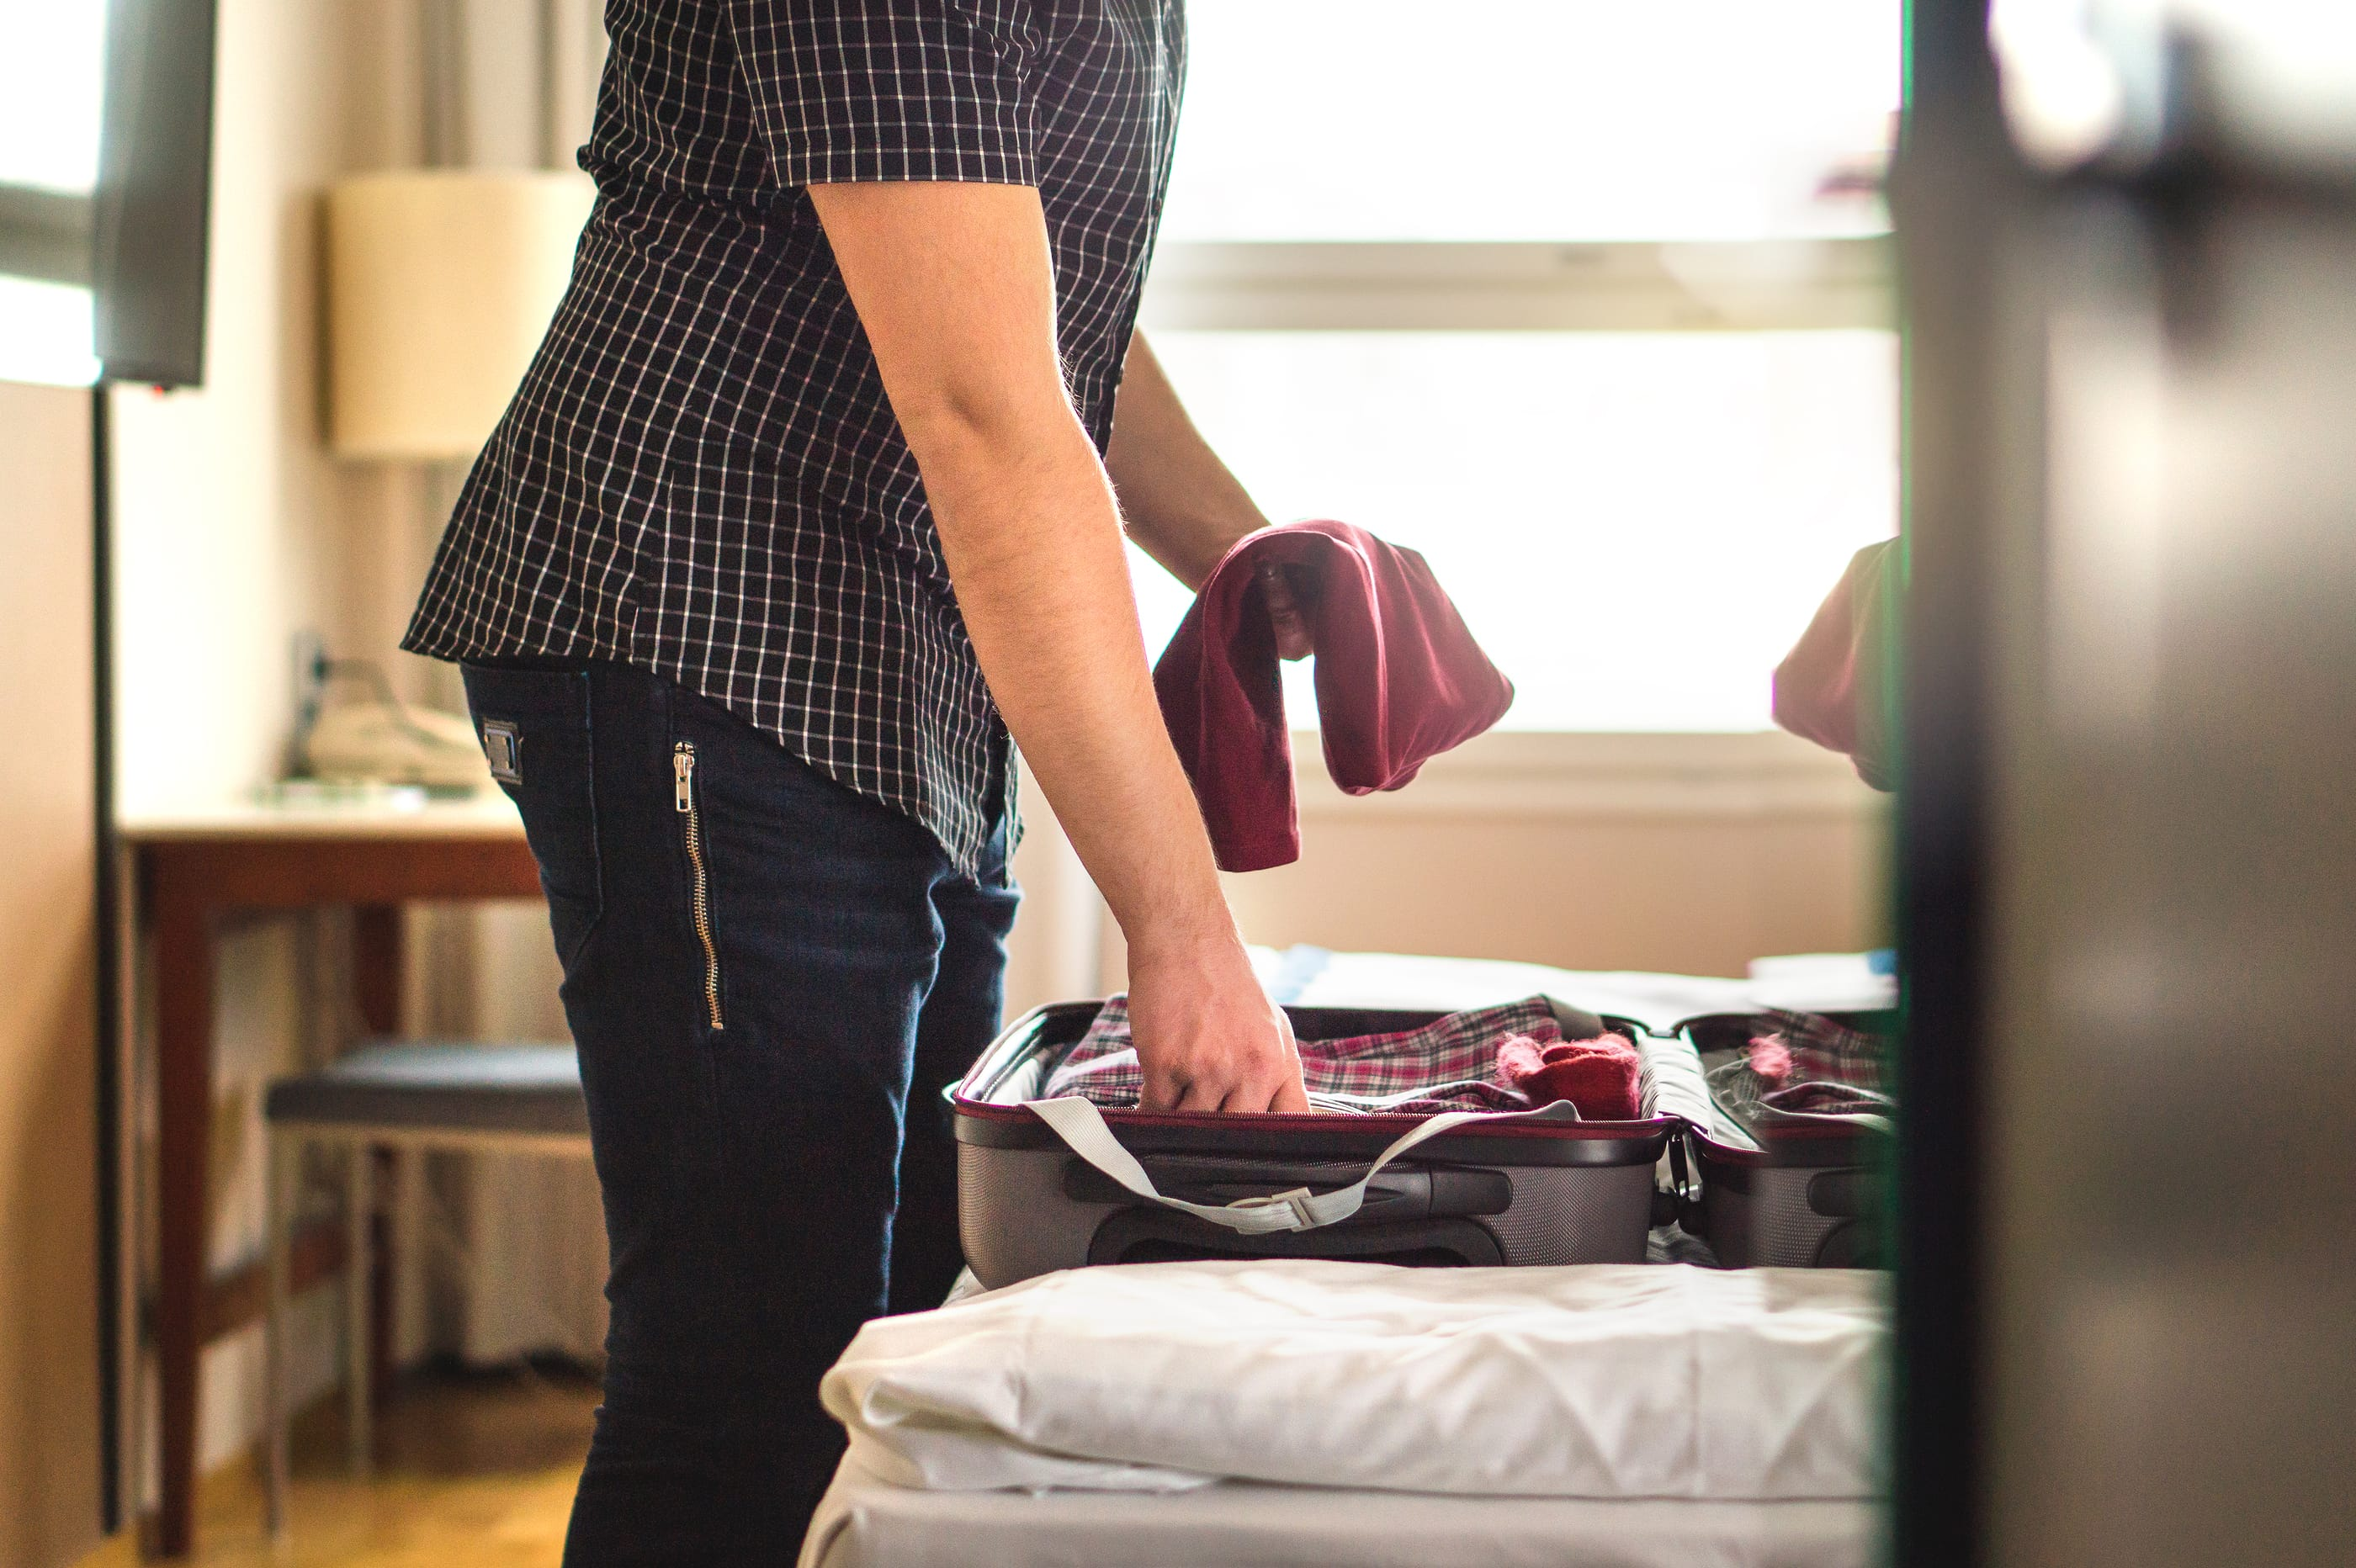 How to Avoid Post-Vacation Clutter With Unpacking Tips